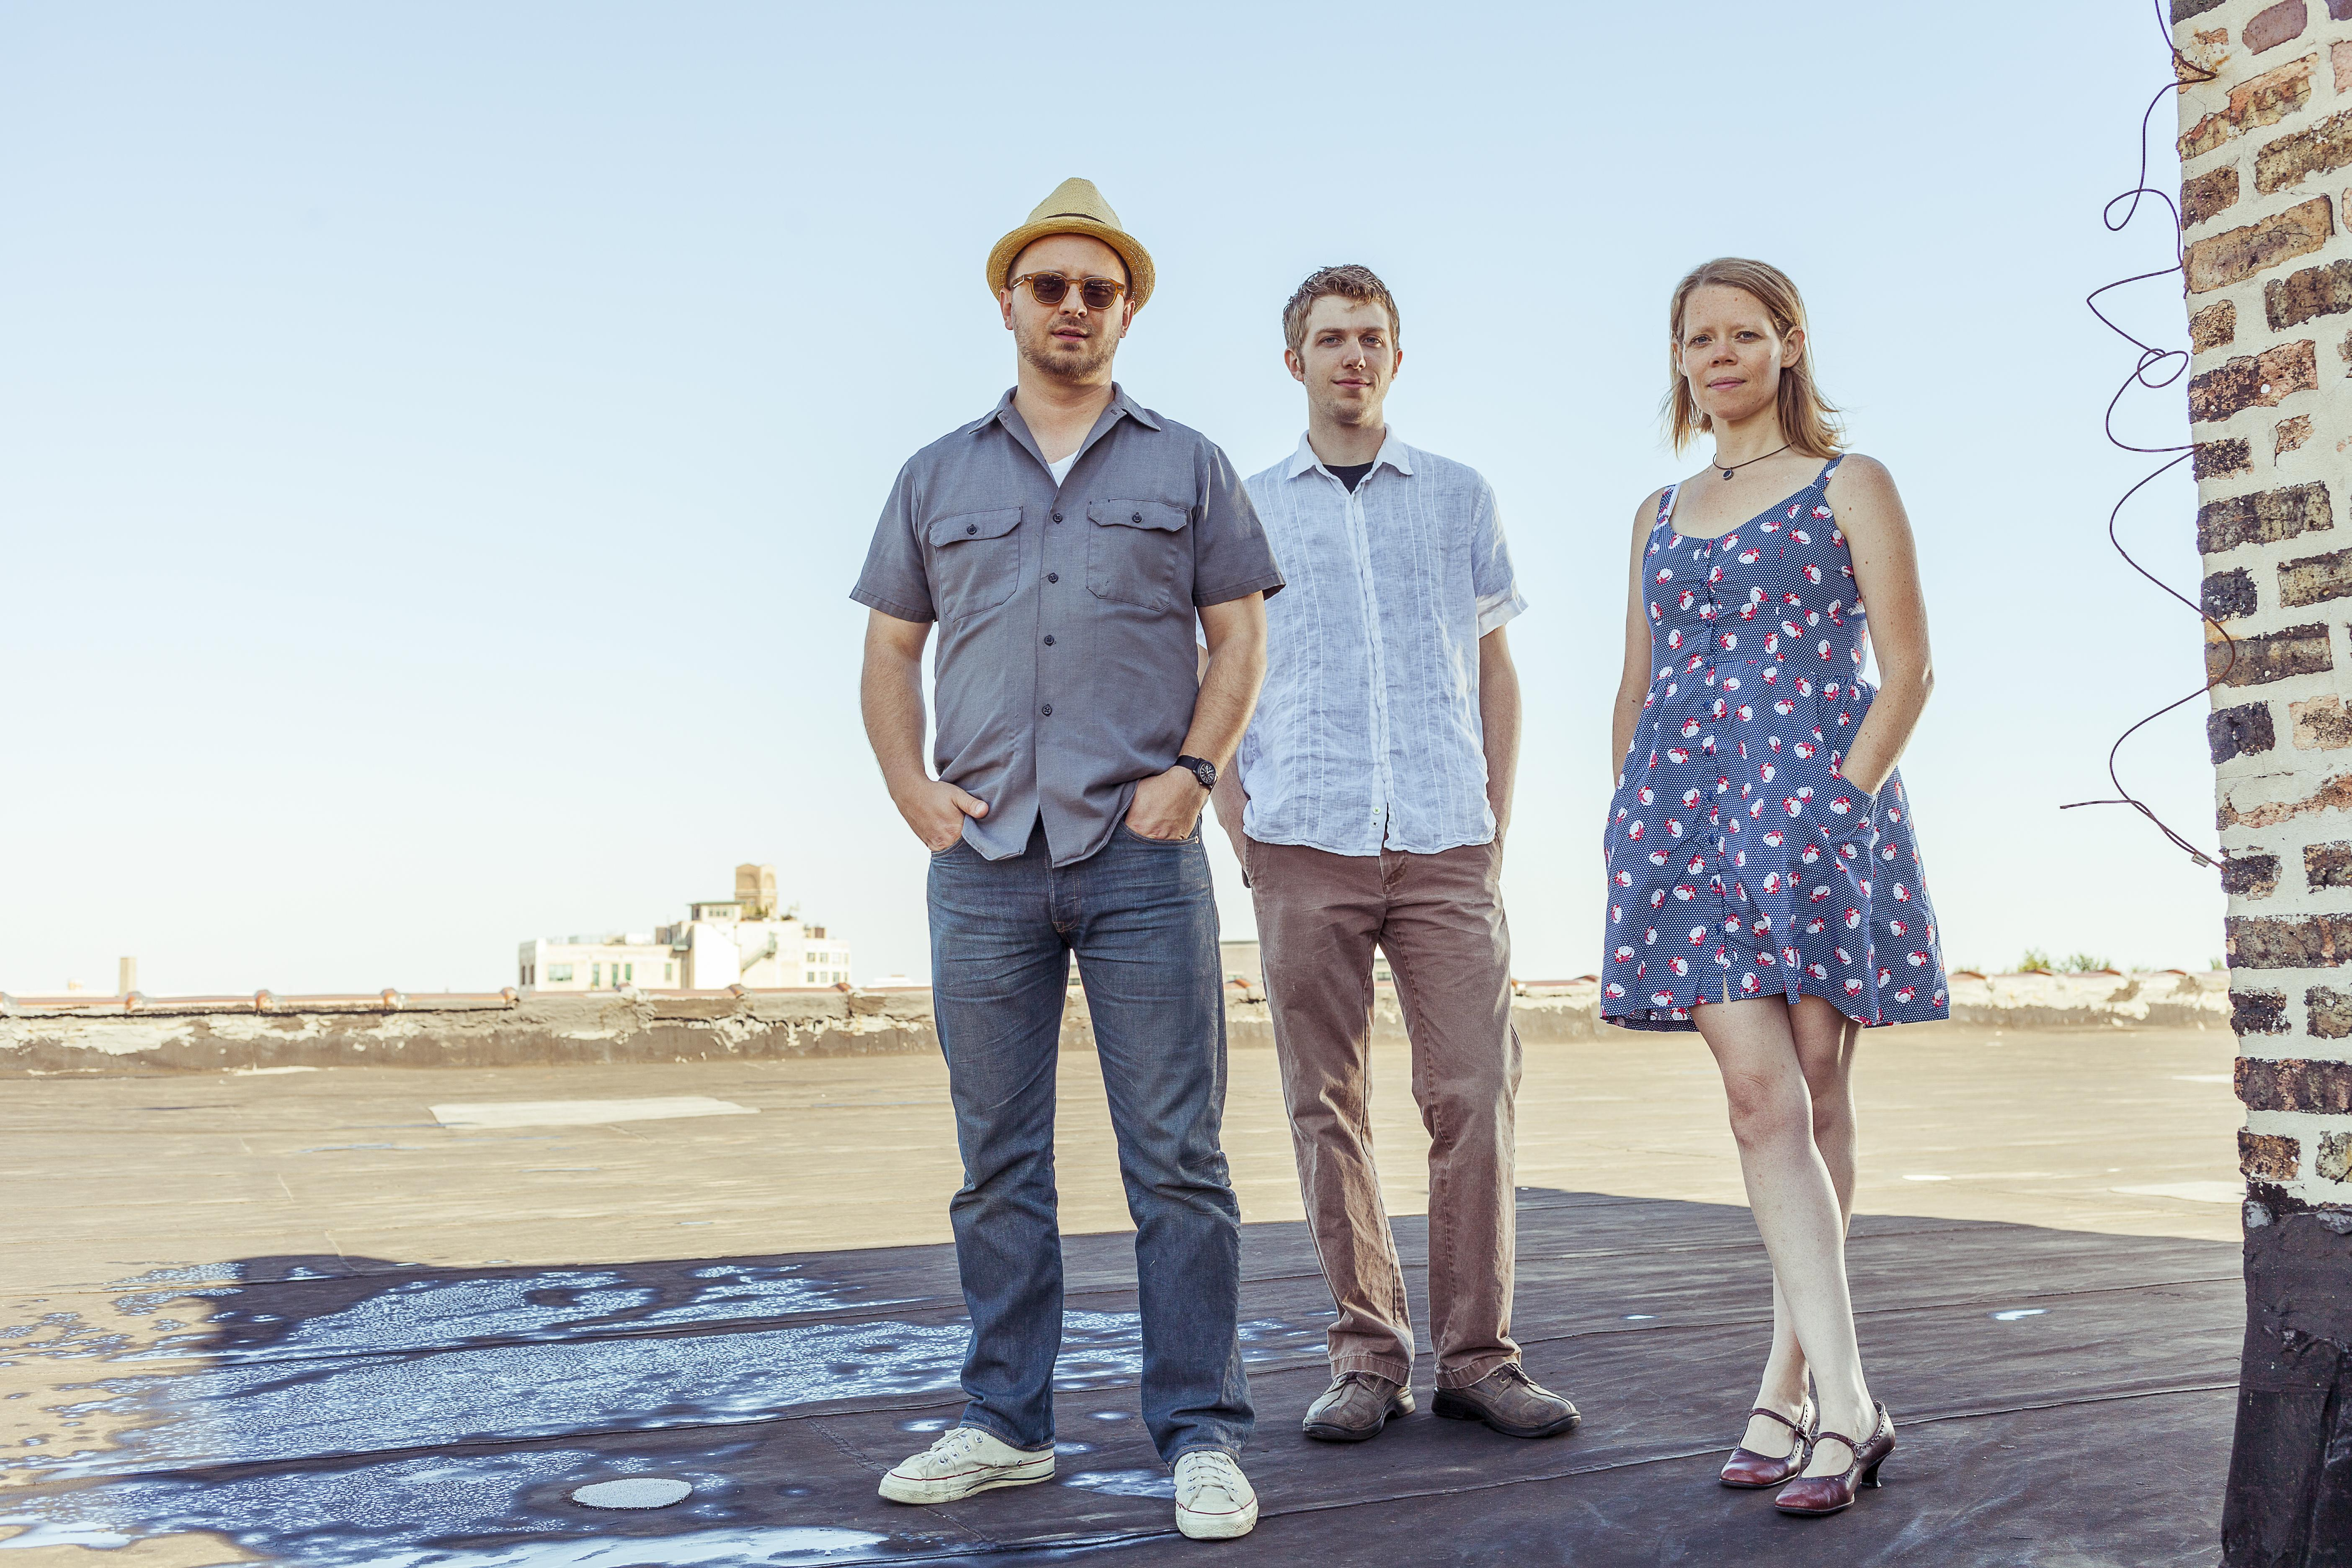 On a sunny day, two men and one woman stand in a shadow cast upon a rooftop.